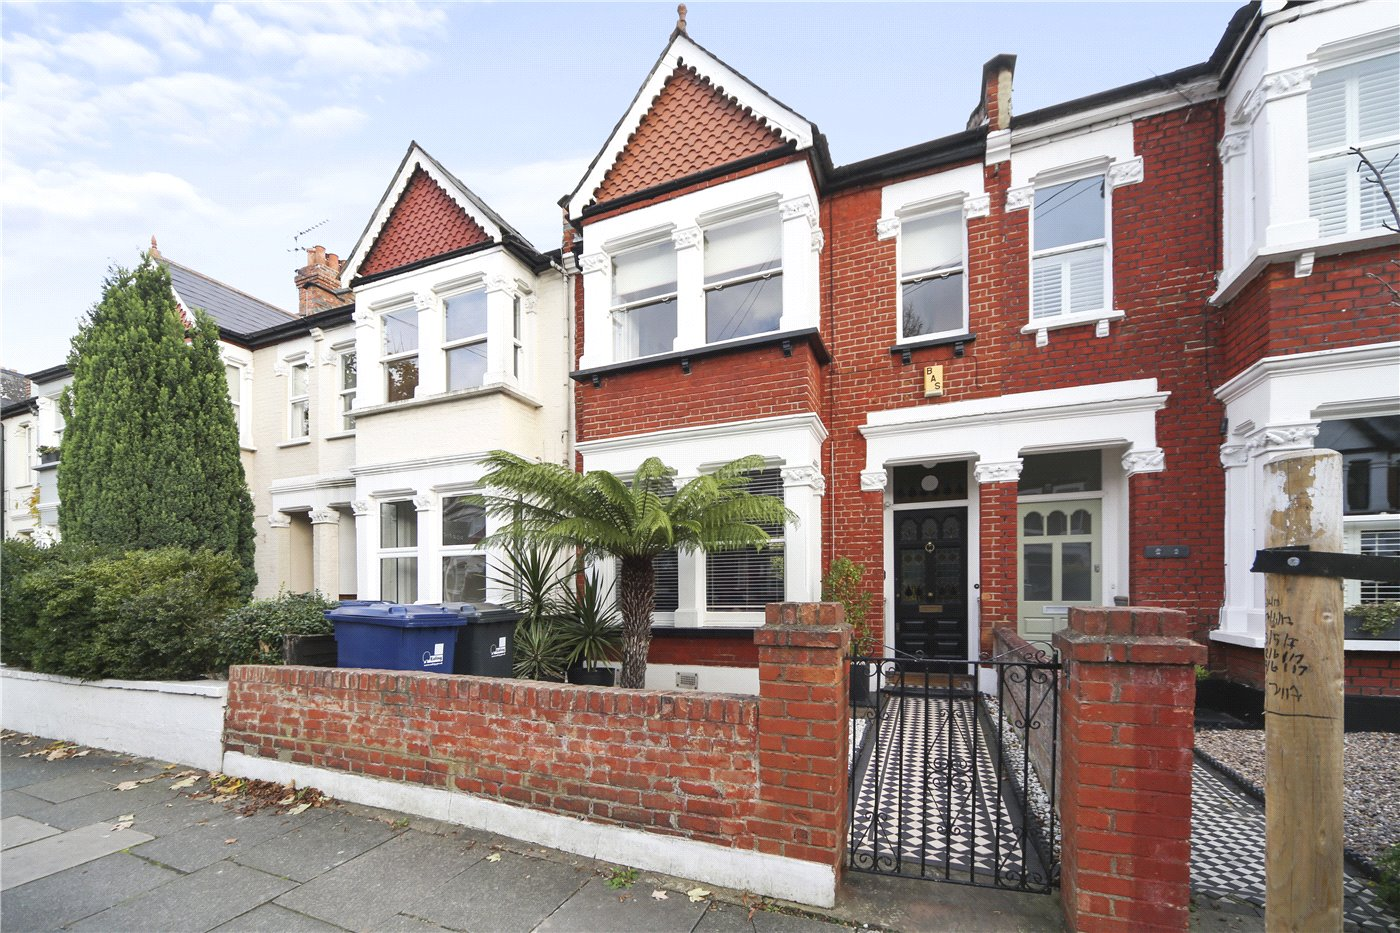 4 Bedrooms Terraced House for sale in Maldon Road, London, W3